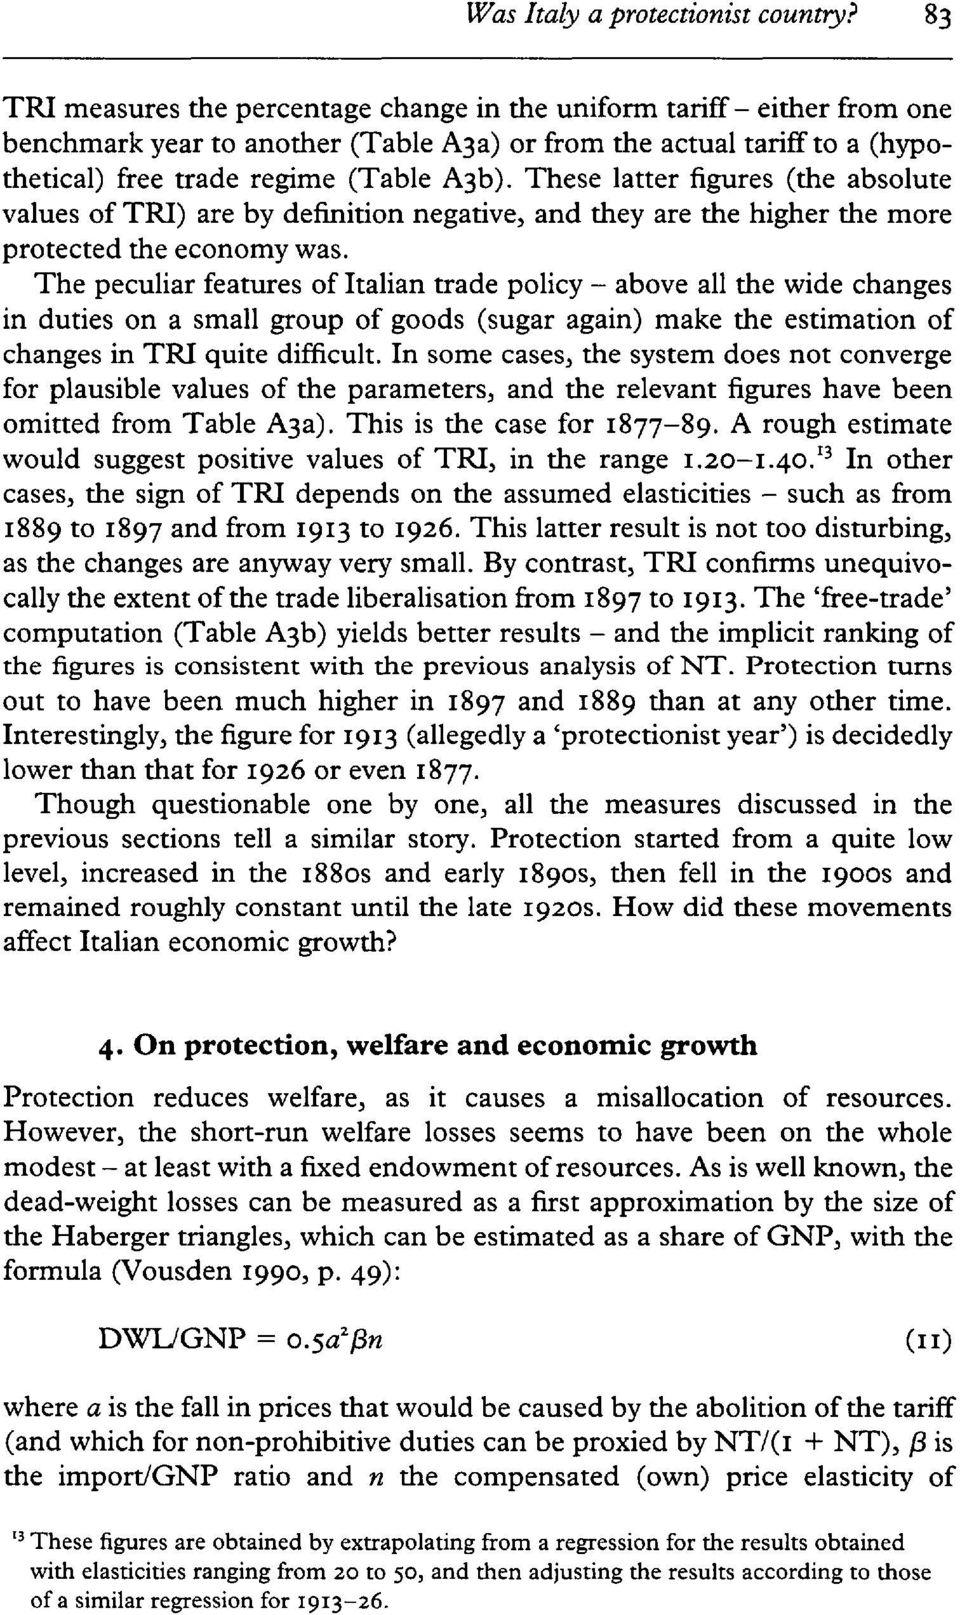 These latter figures (the absolute values of TRI) are by definition negative, and they are the higher the more protected the economy was.